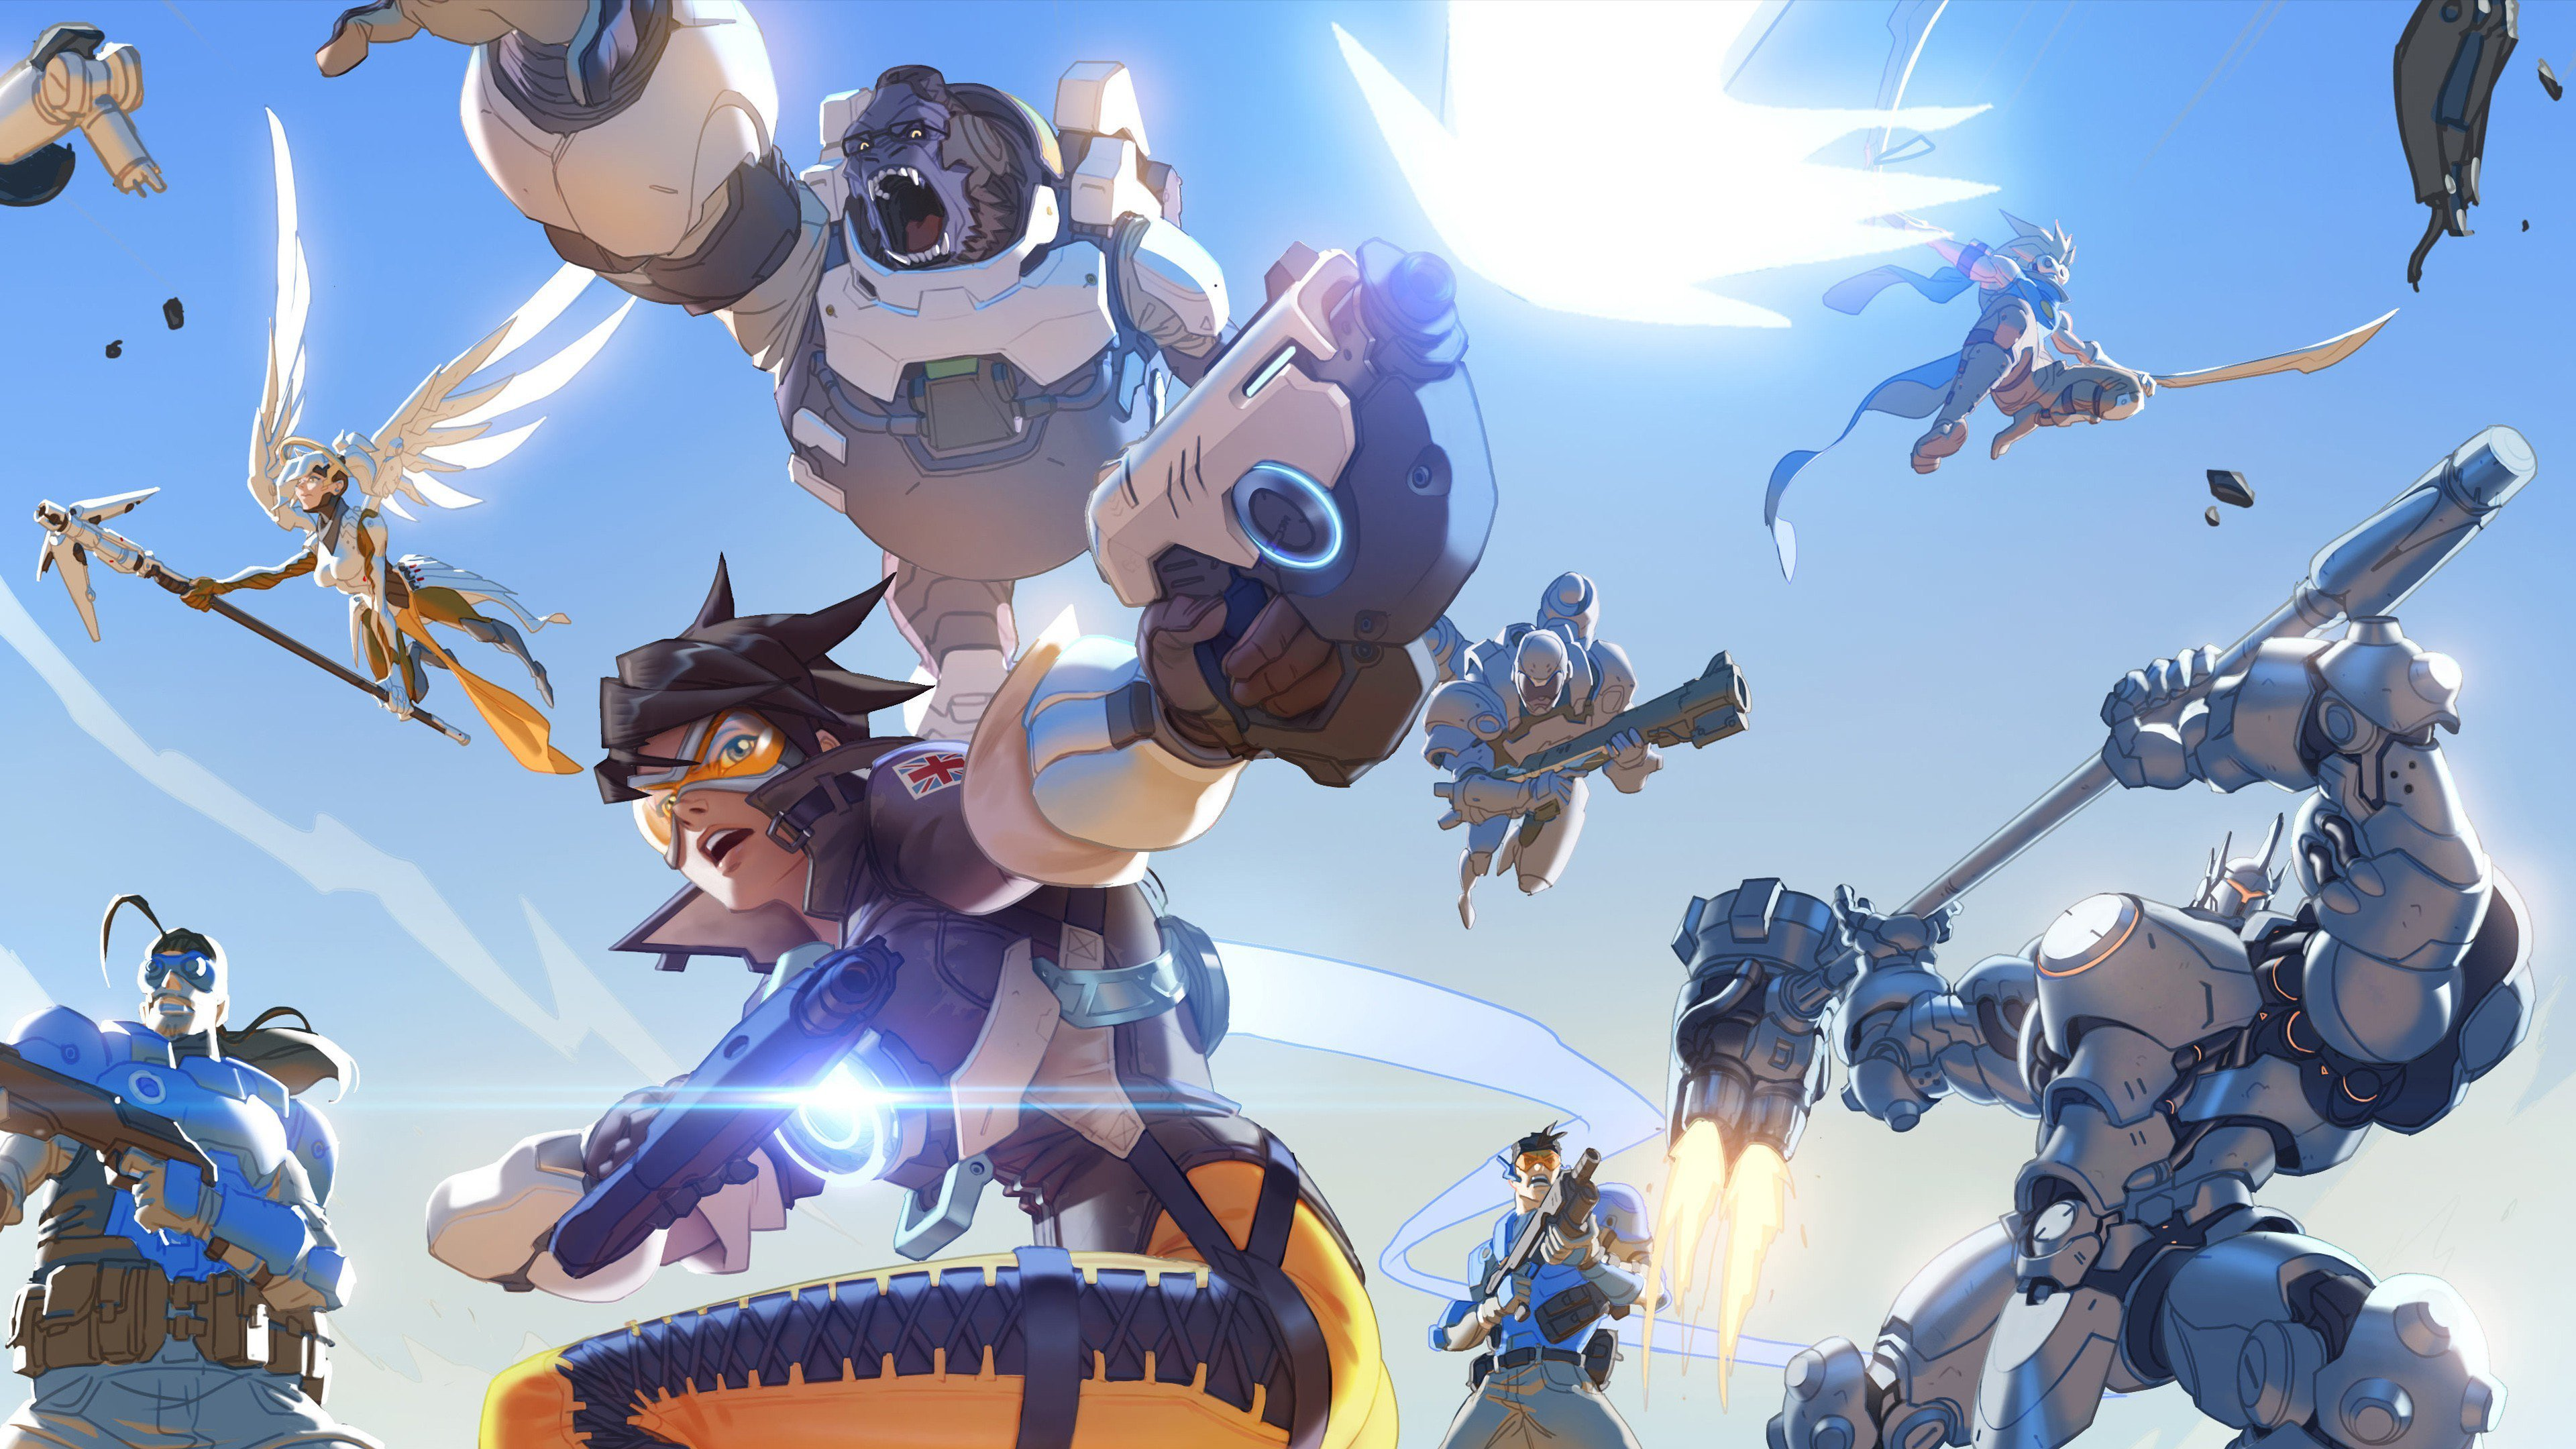 Overwatch from Blizzard Enterainment